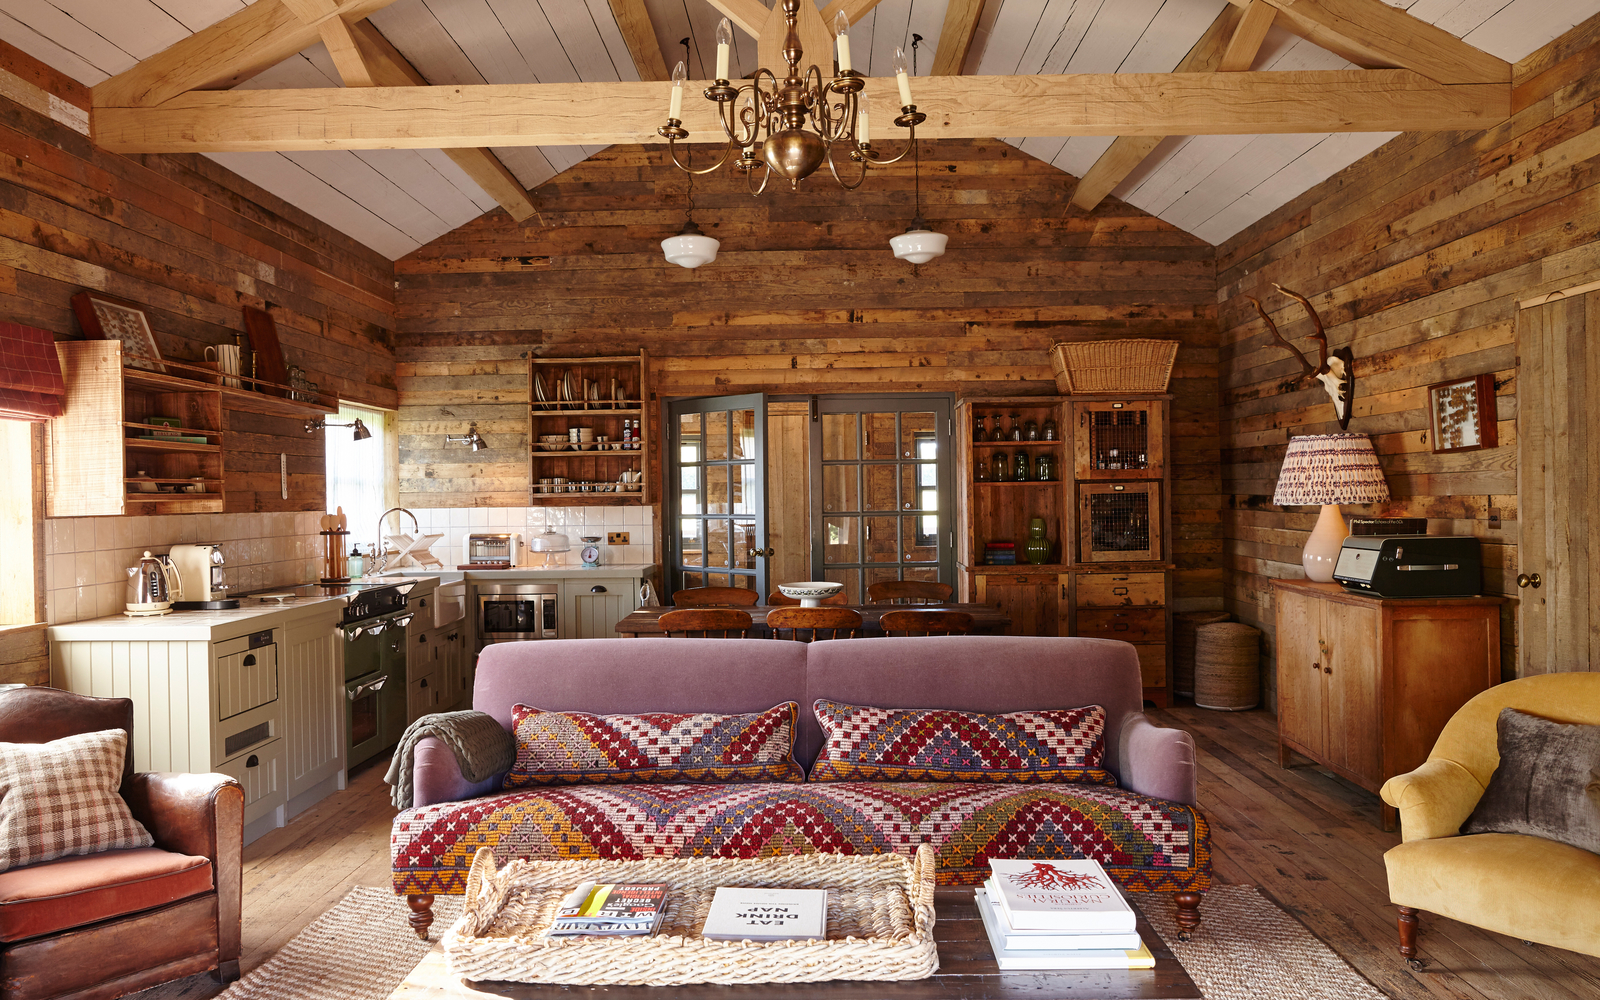 The Review: Rural England's Much-Anticipated Soho Farmhouse